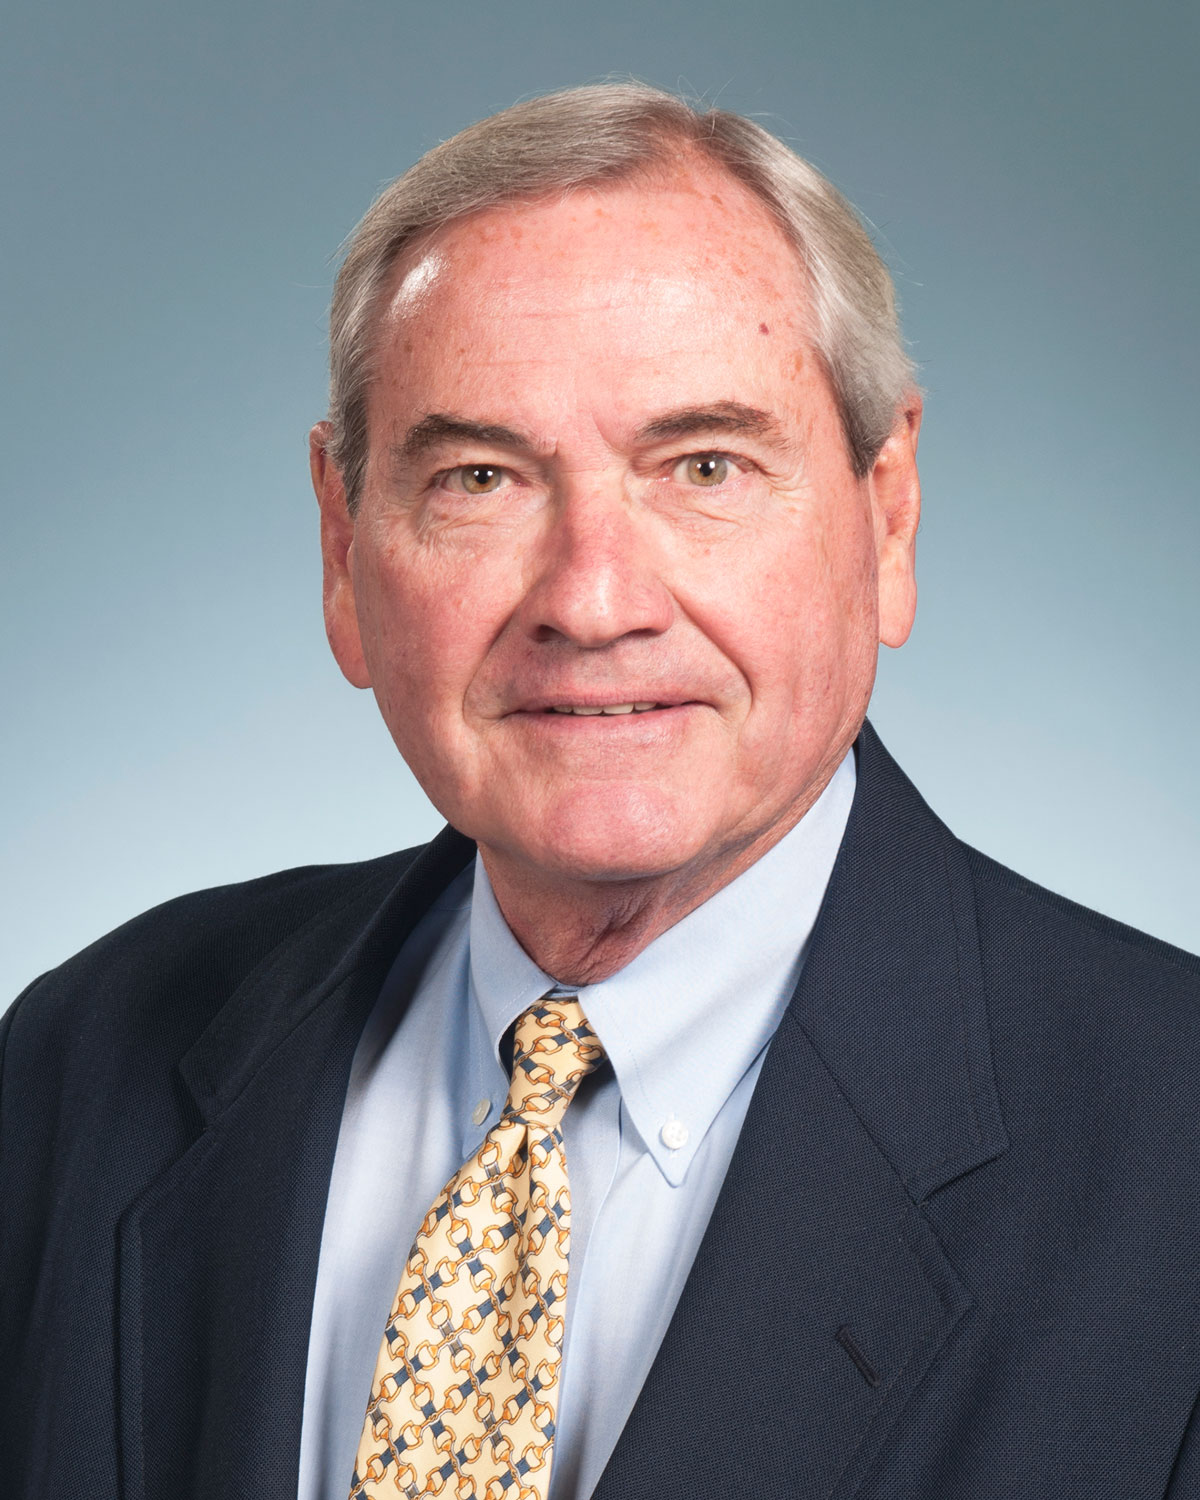 Joseph A. Dieterle, DO '70